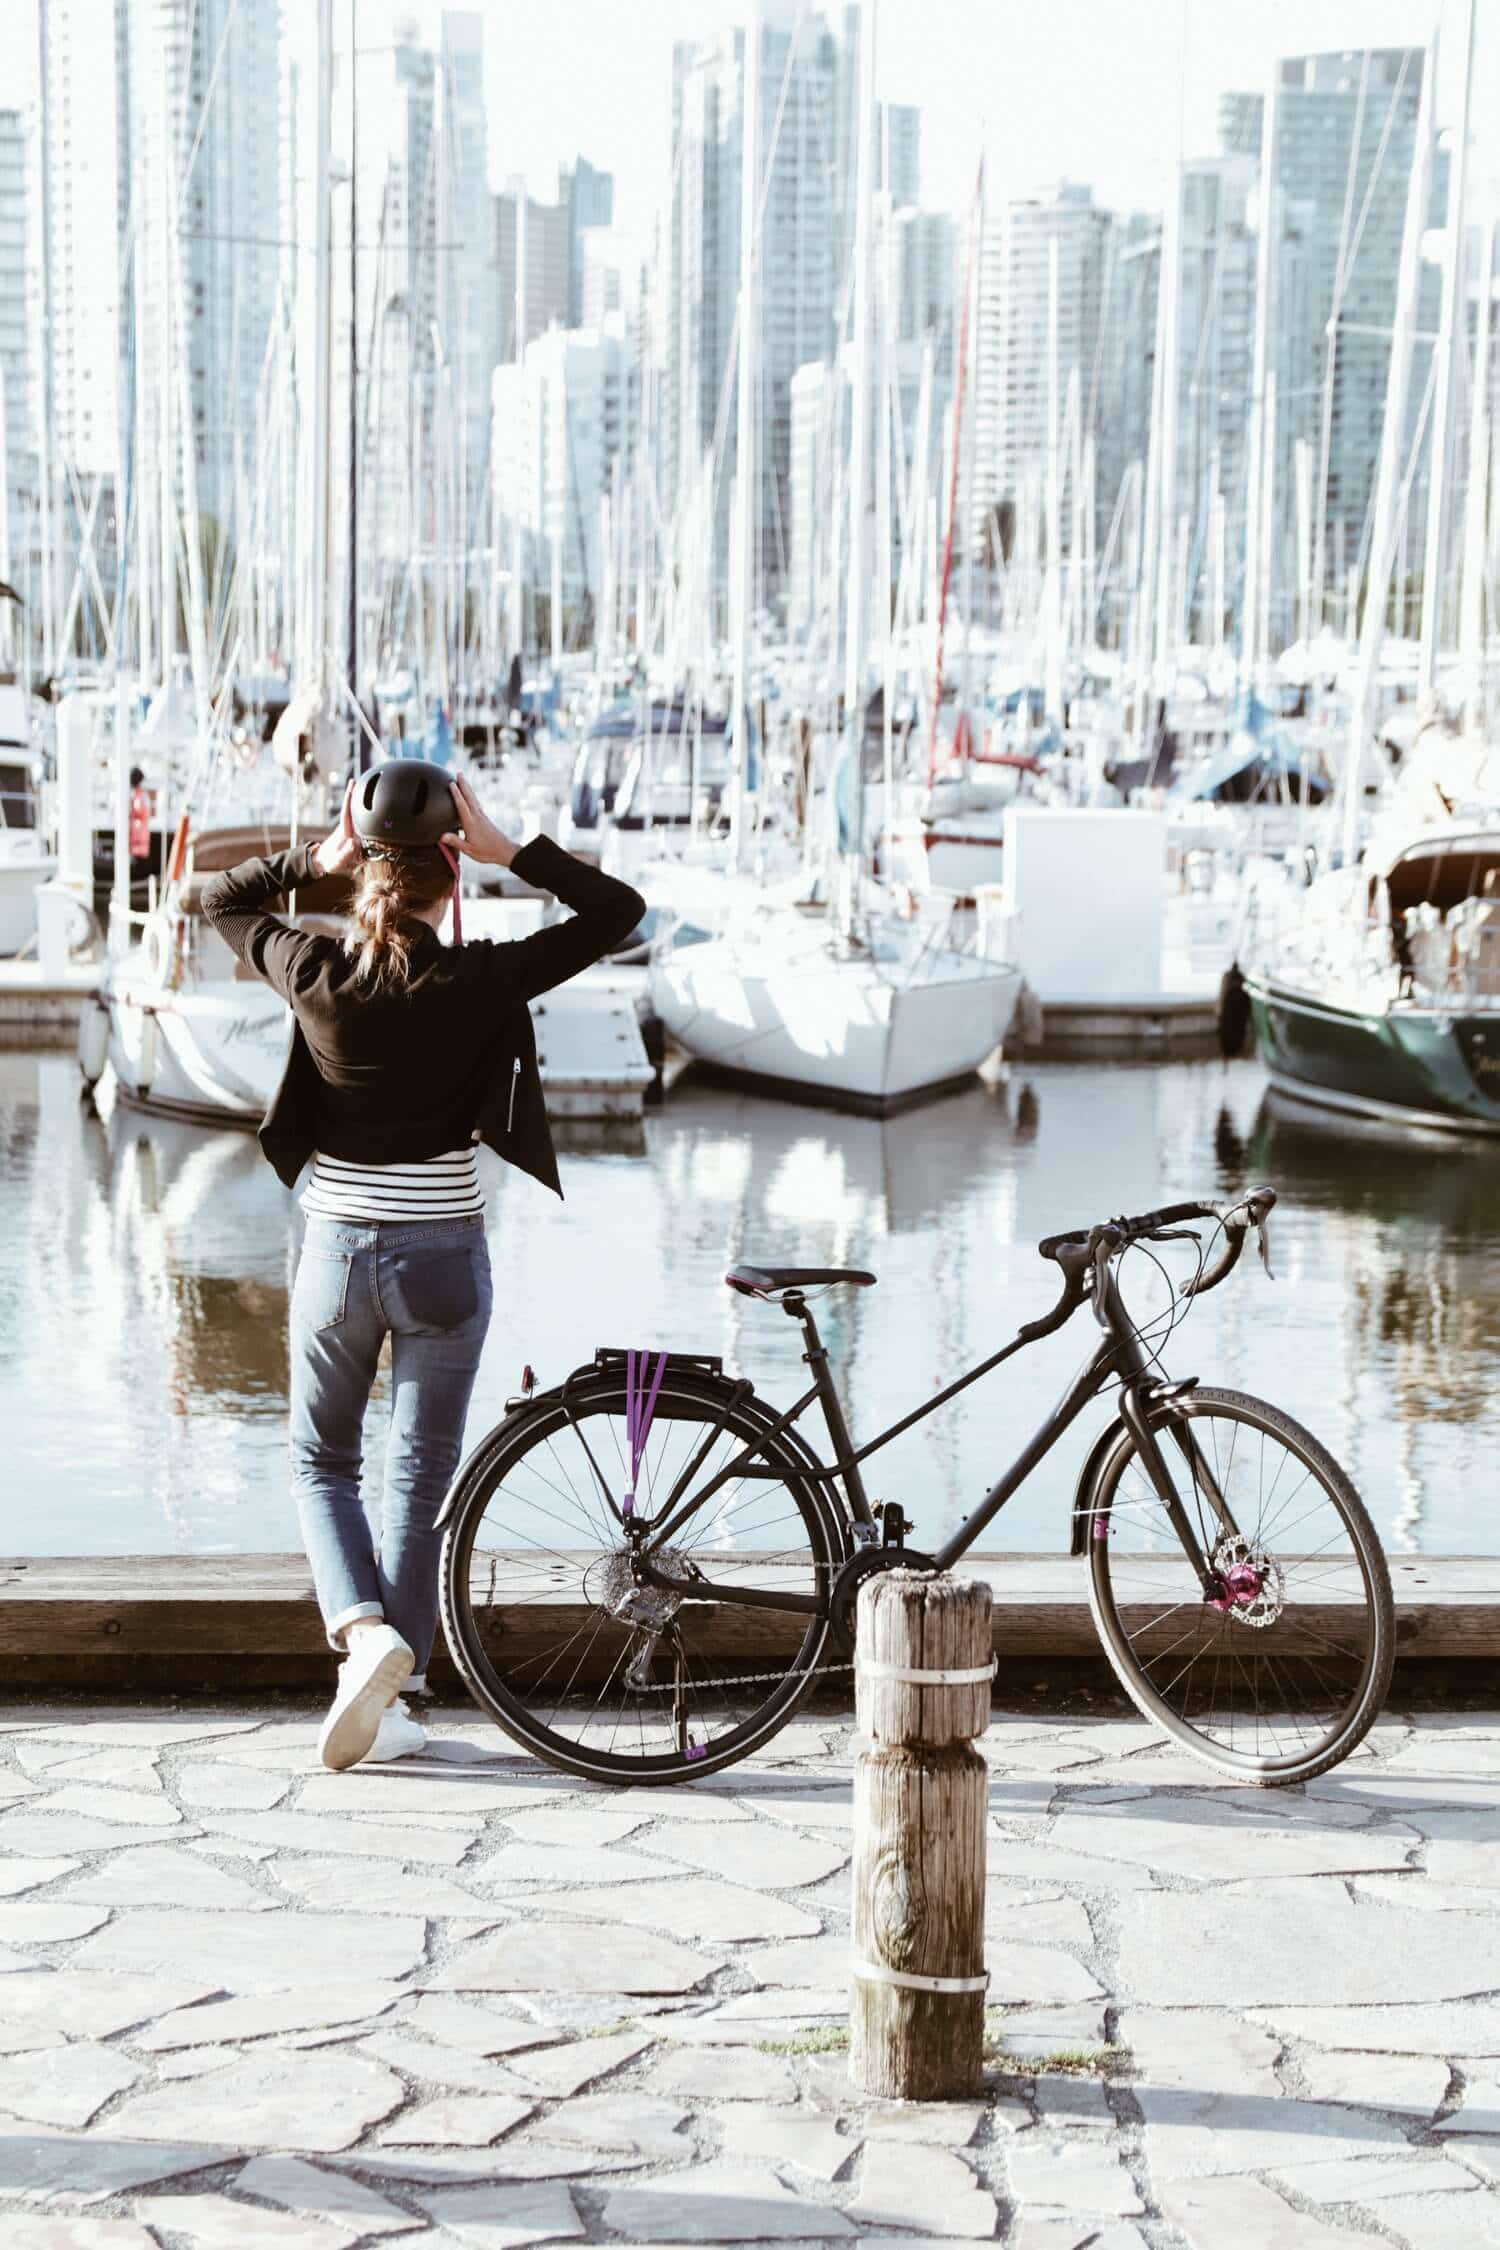 Working Holiday Visa In Canada - What To Pack For Your Canadian Experience